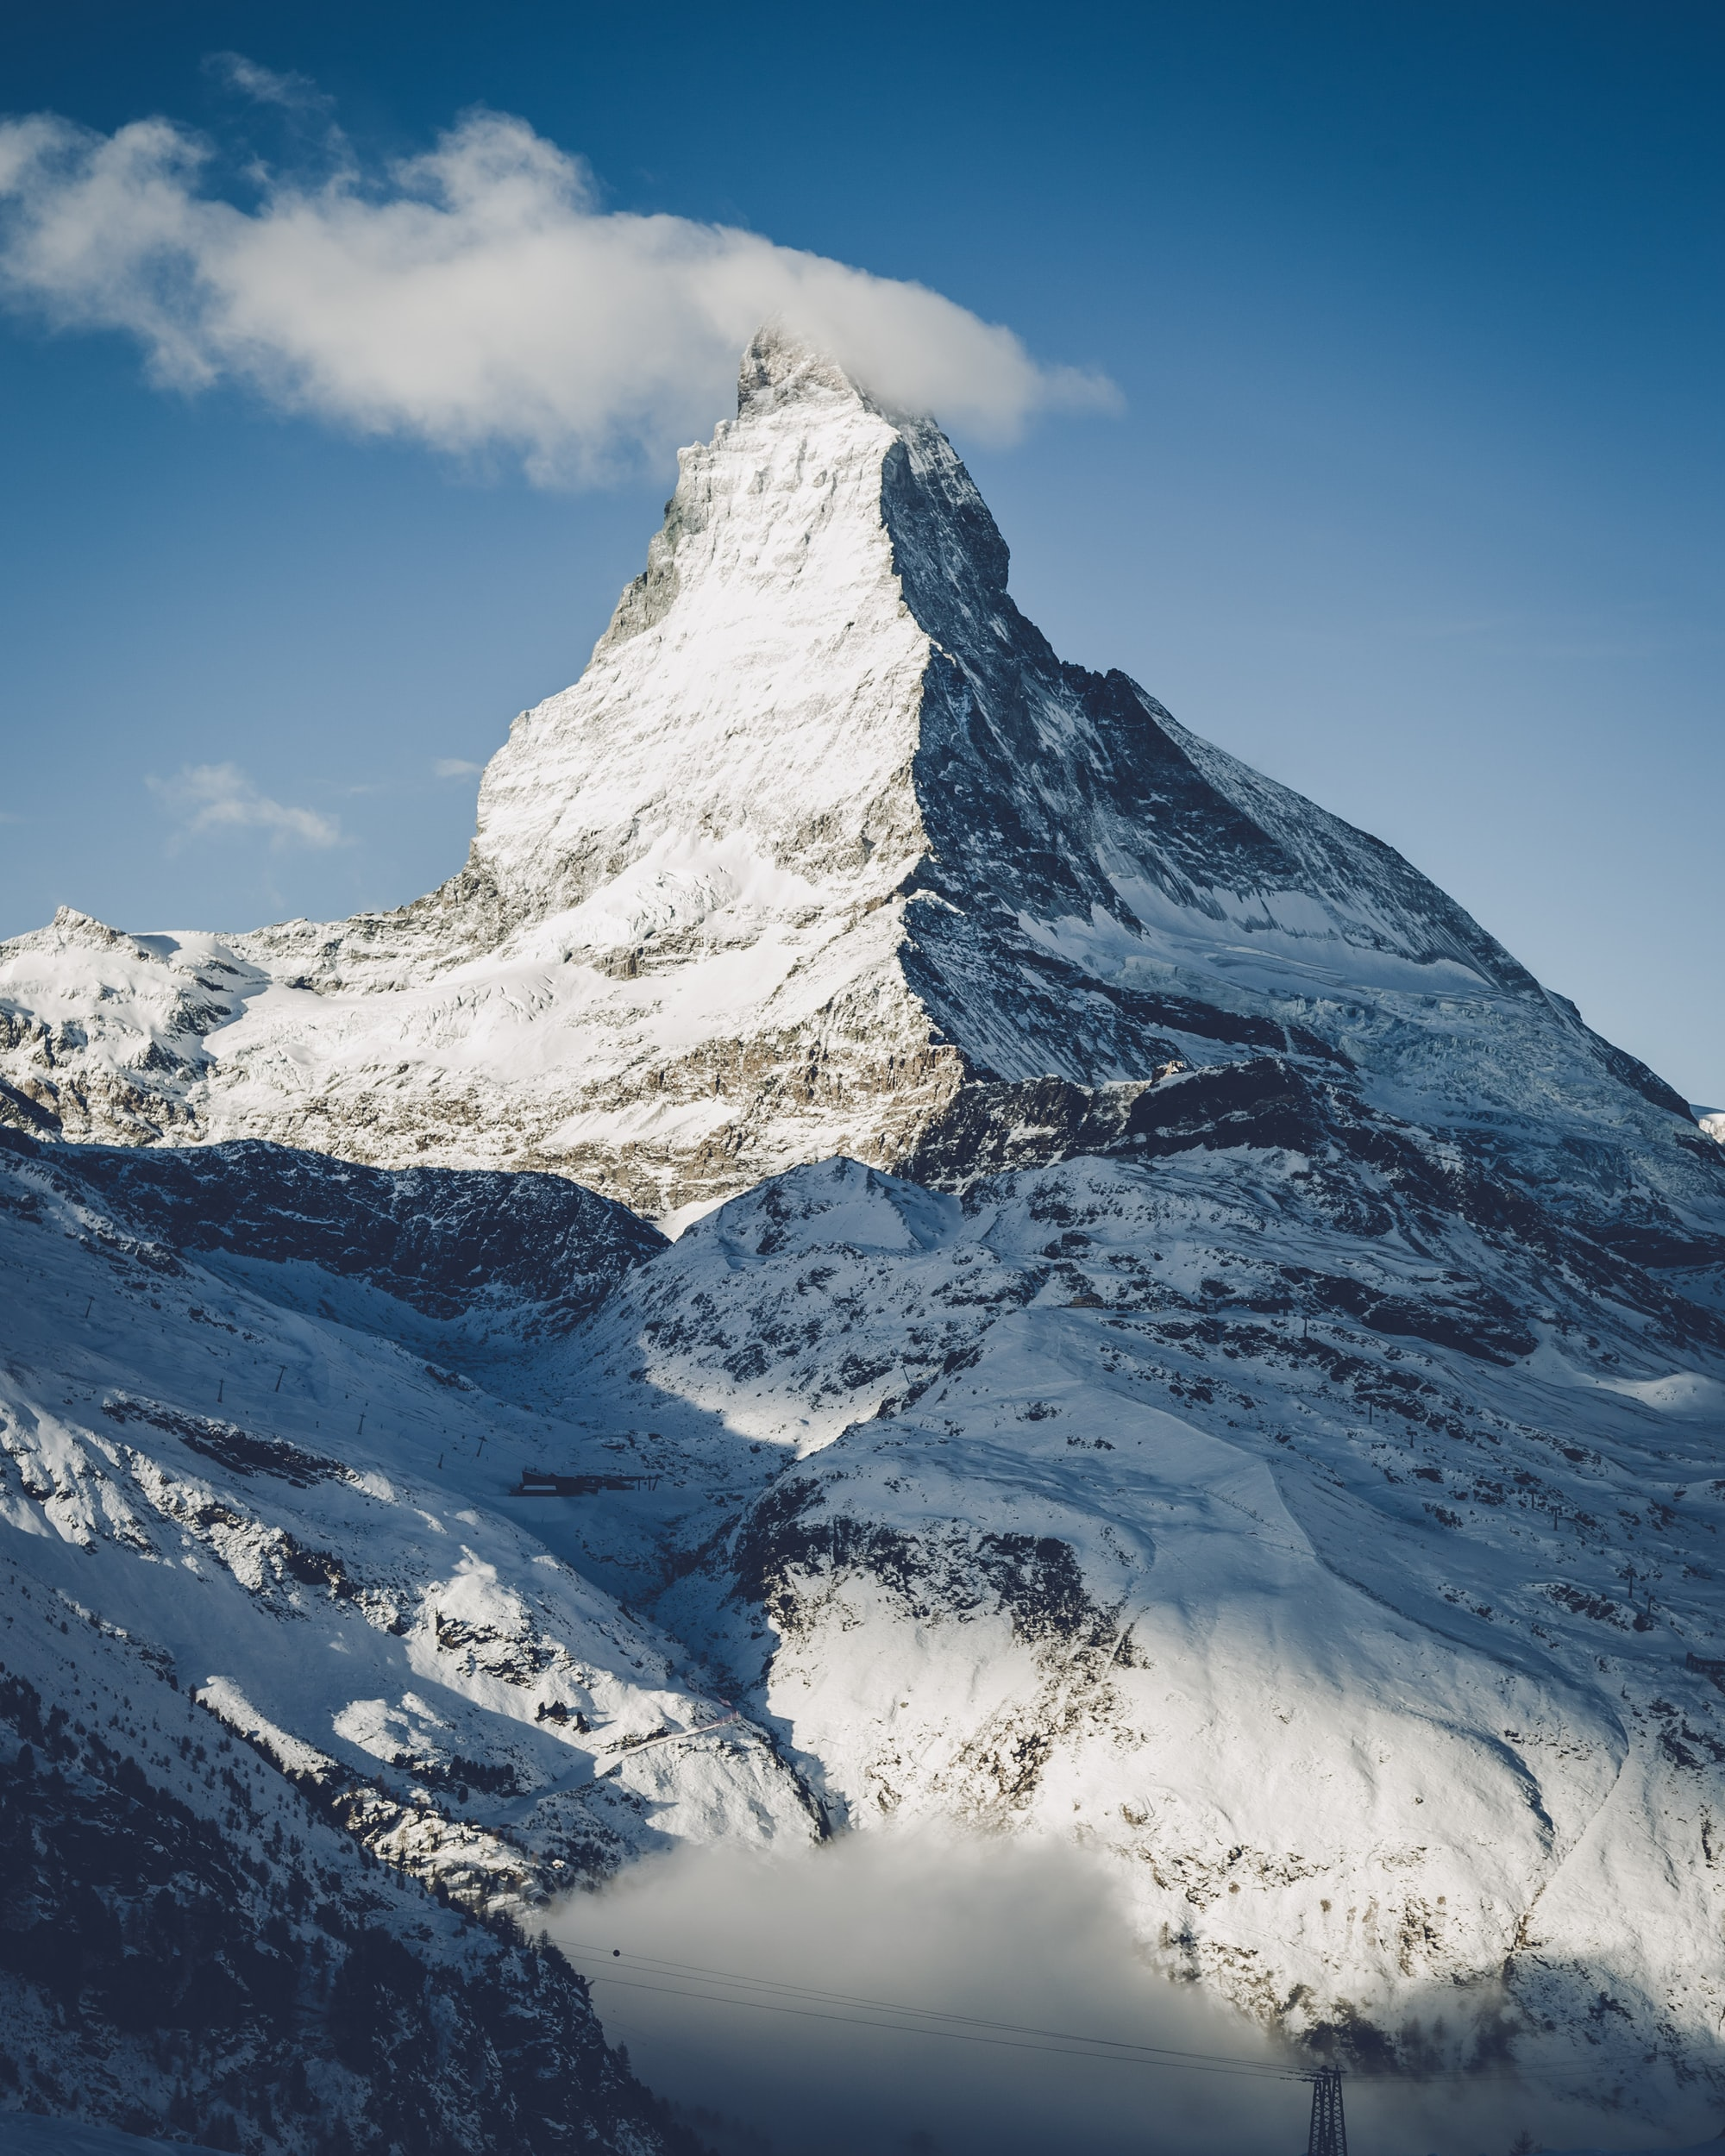 I took this photo in the middle of winter at the Matterhorn, Switzerland.Join me on Instagram @phillipgow